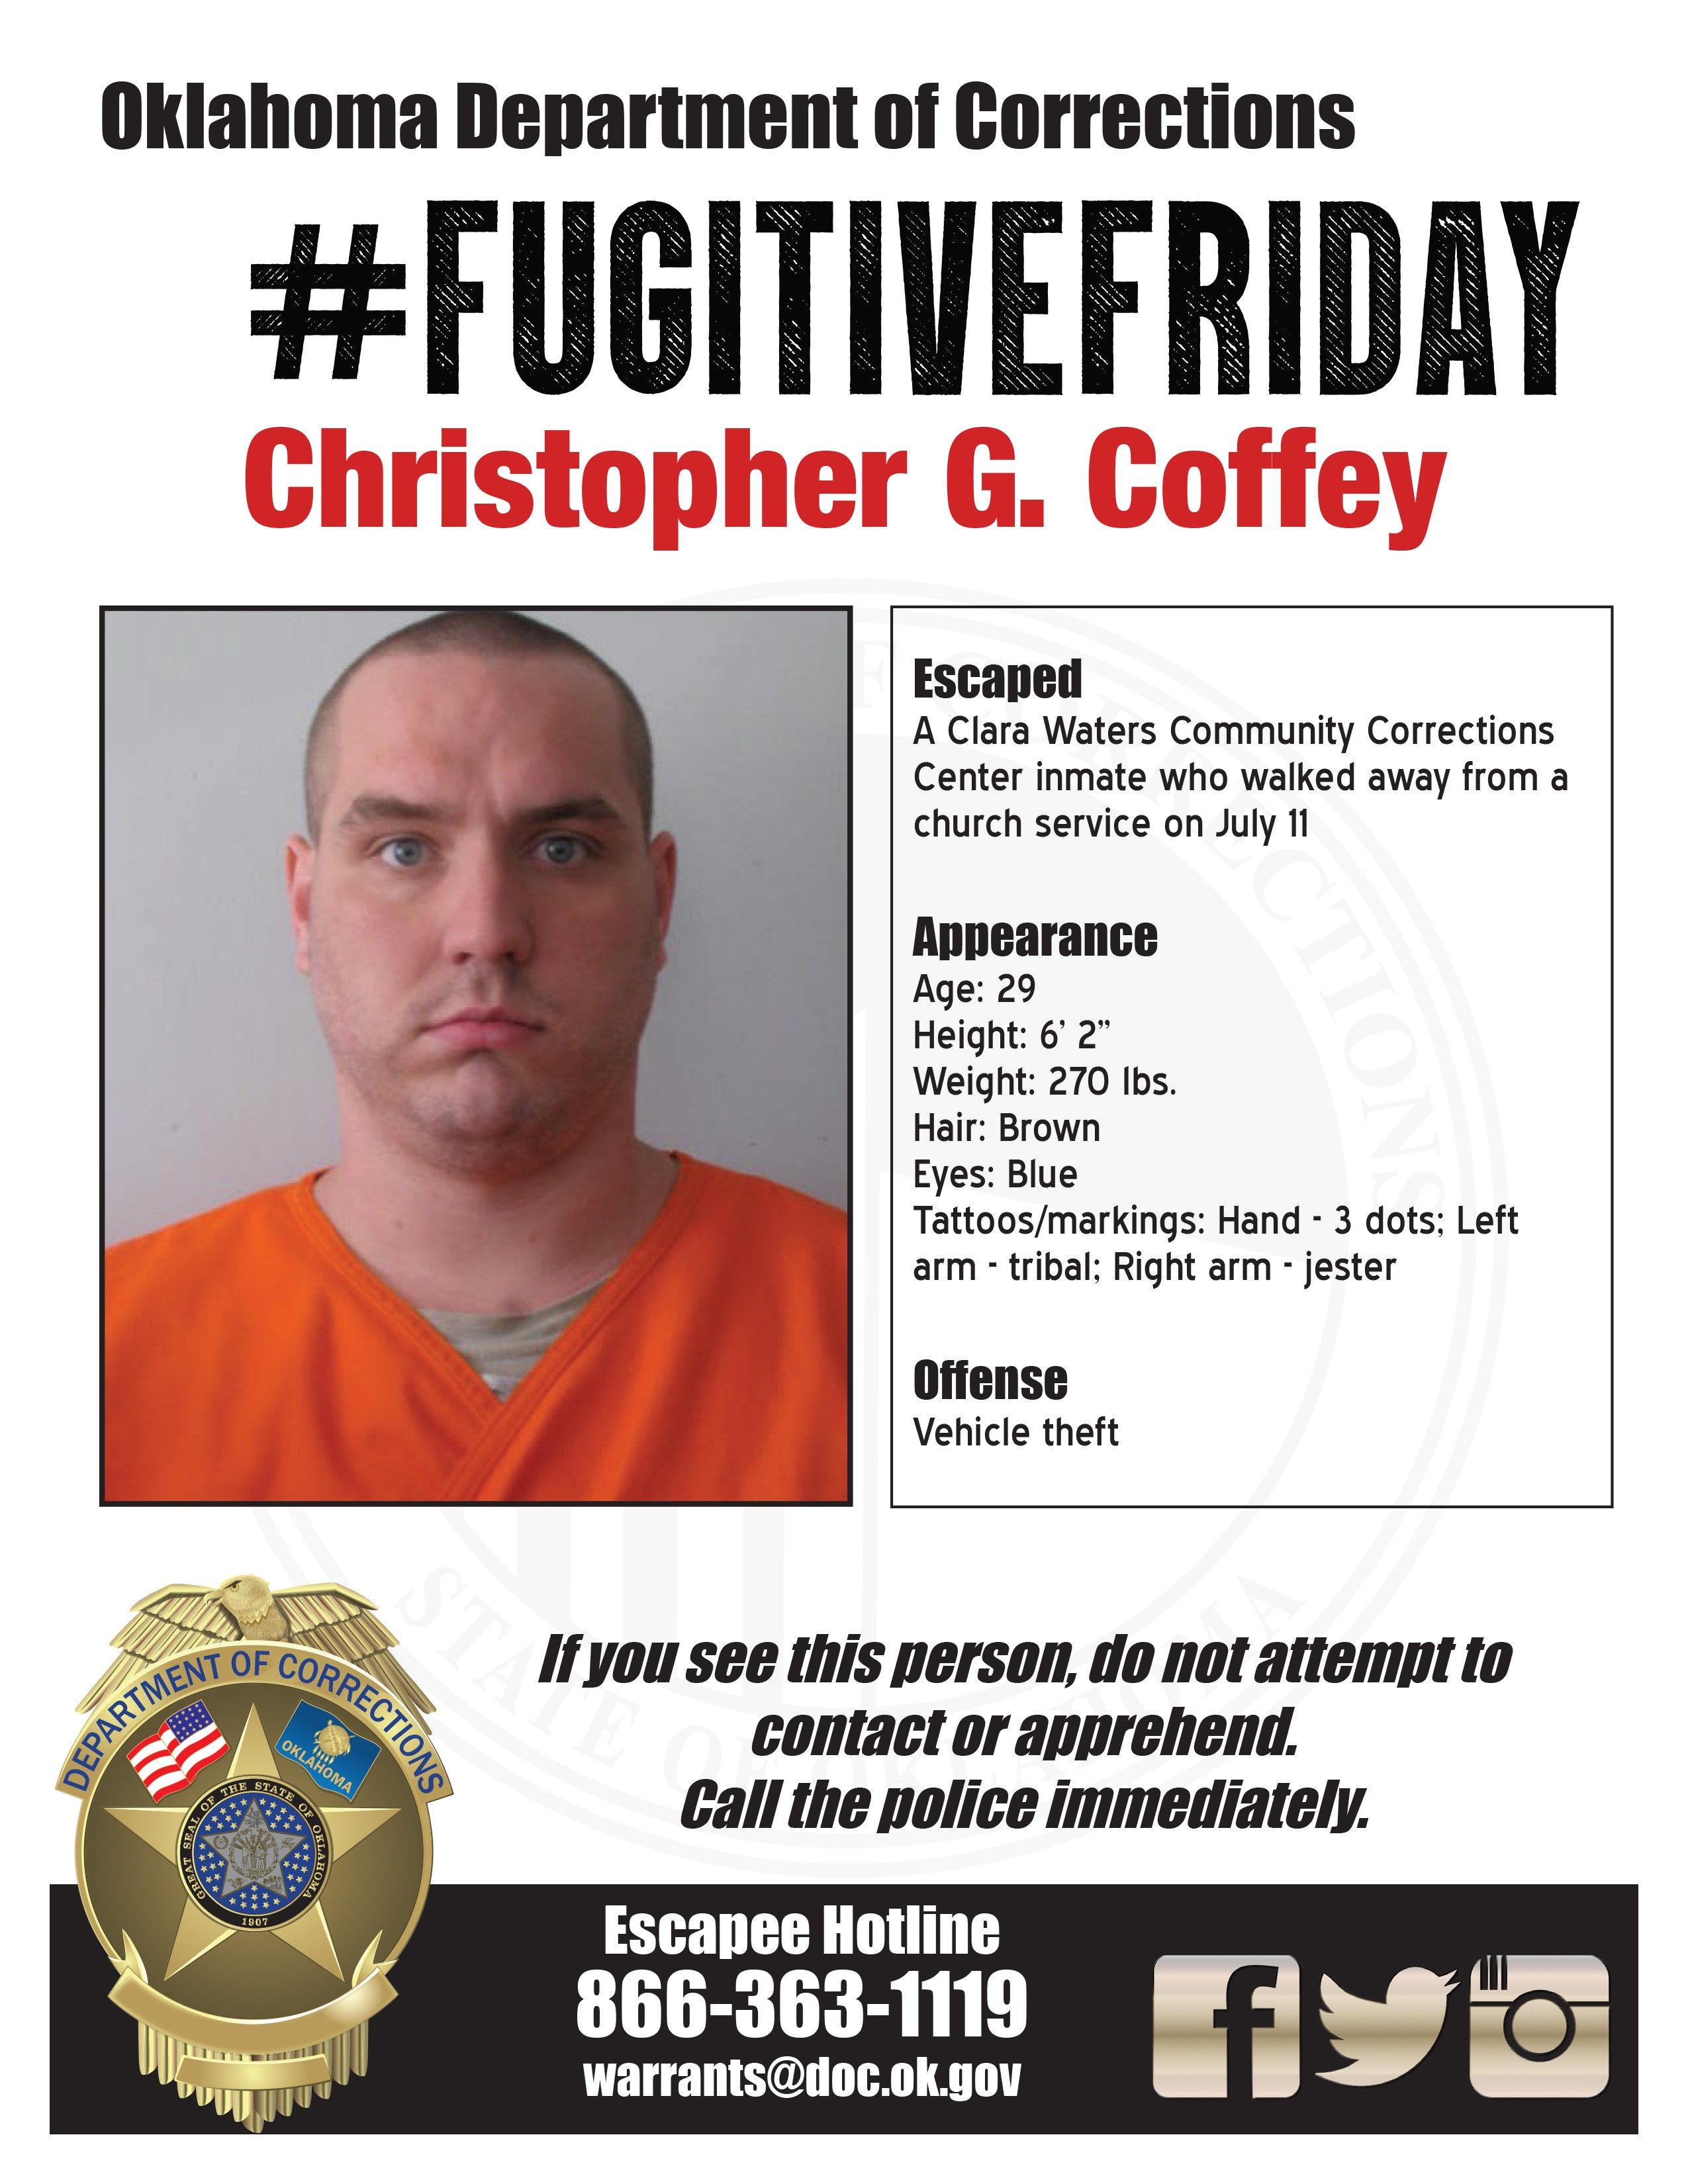 Christopher Coffey walkaway